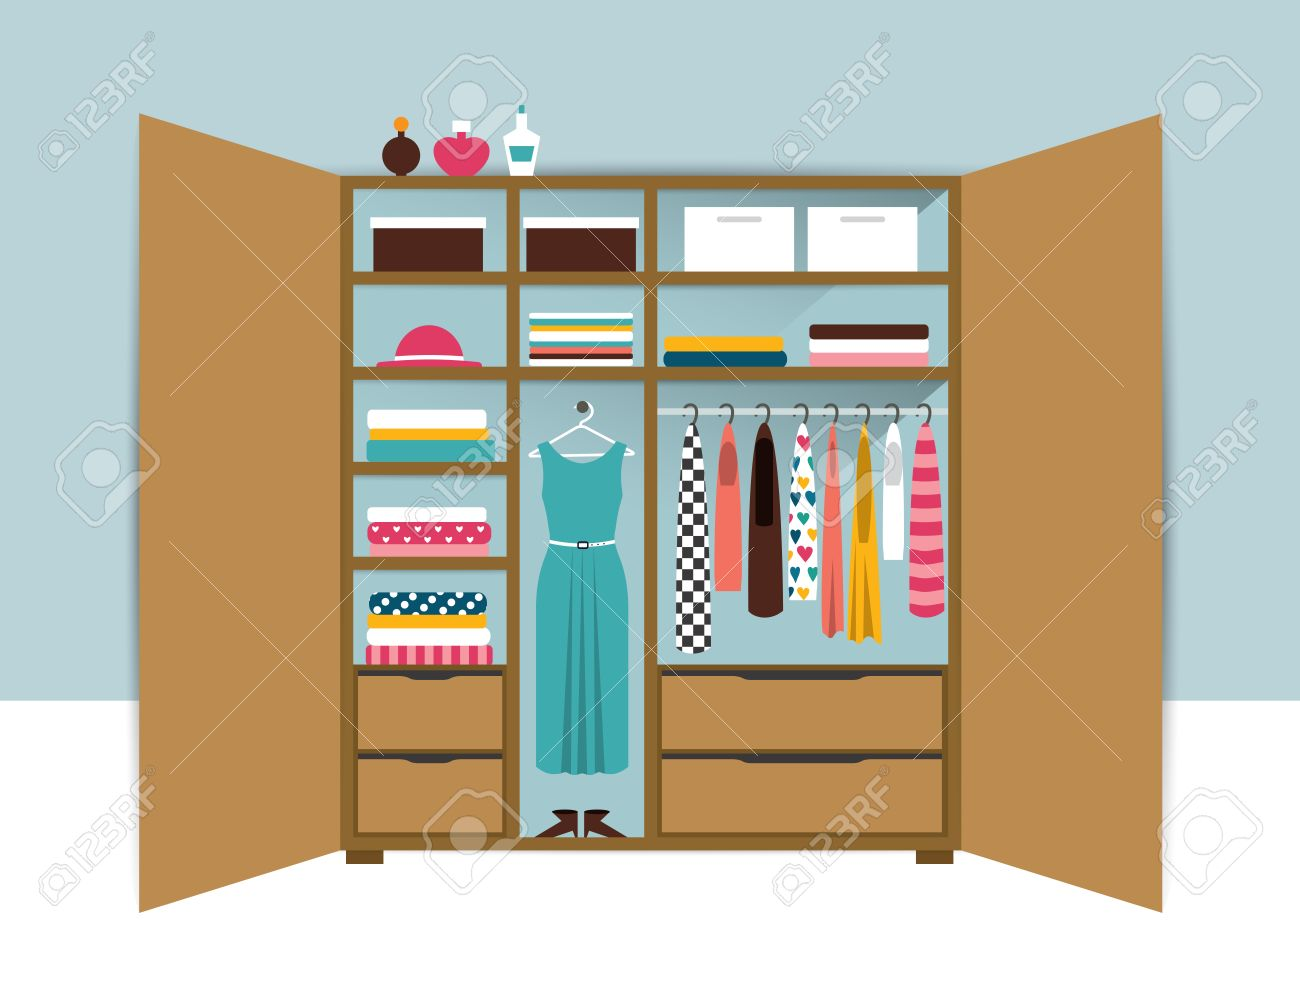 Interior wooden shelves free vector - Wooden Closet With Tidy Clothes Shirts Sweaters Boxes And Shoes